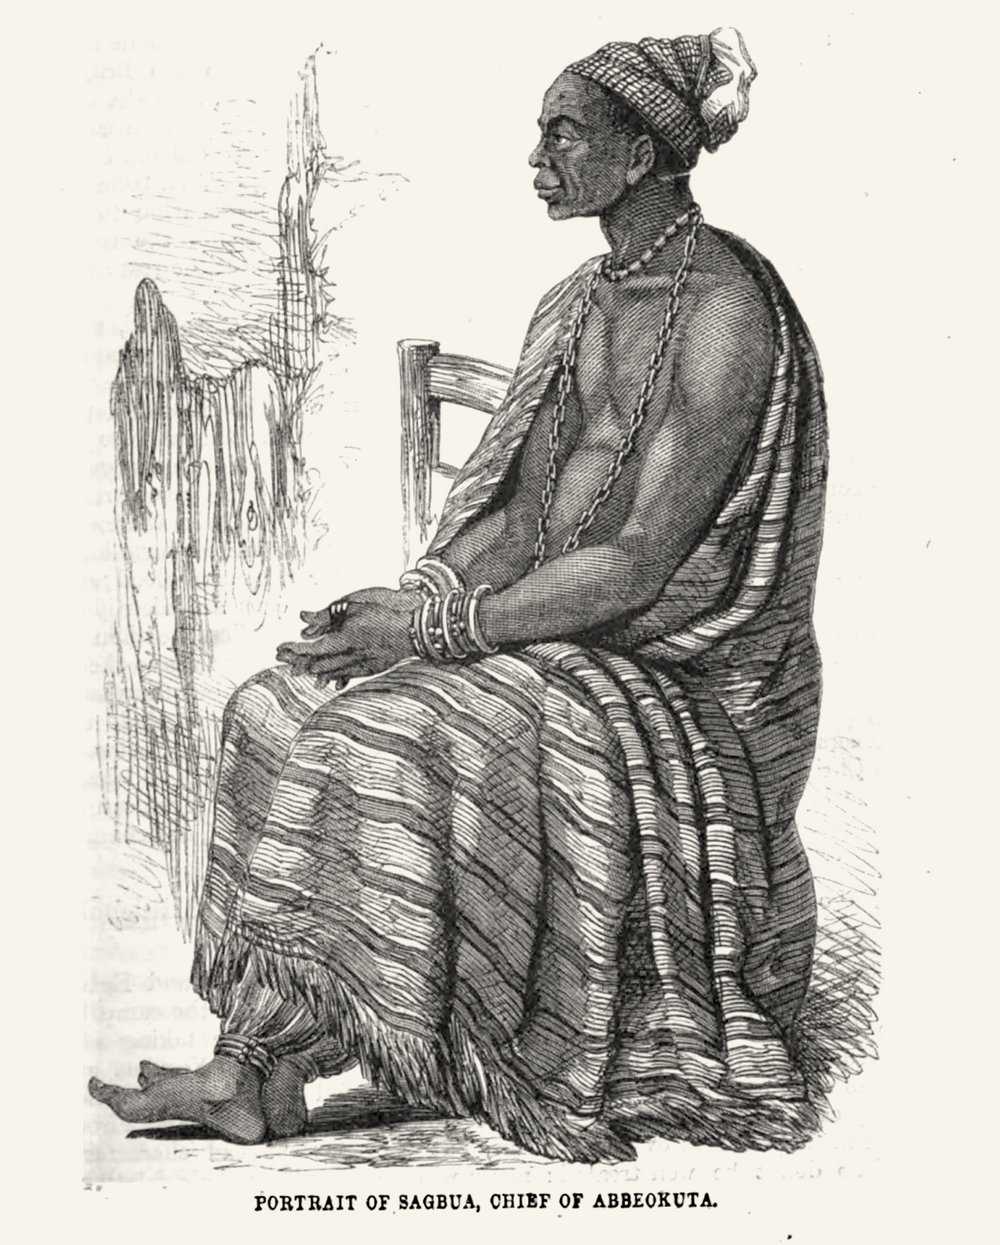 A Yorùbá chief in a typical hand-woven Yorùbá cloth, possibly as the artist imagined it to look-like. CMS Illustration, image Public Domain.